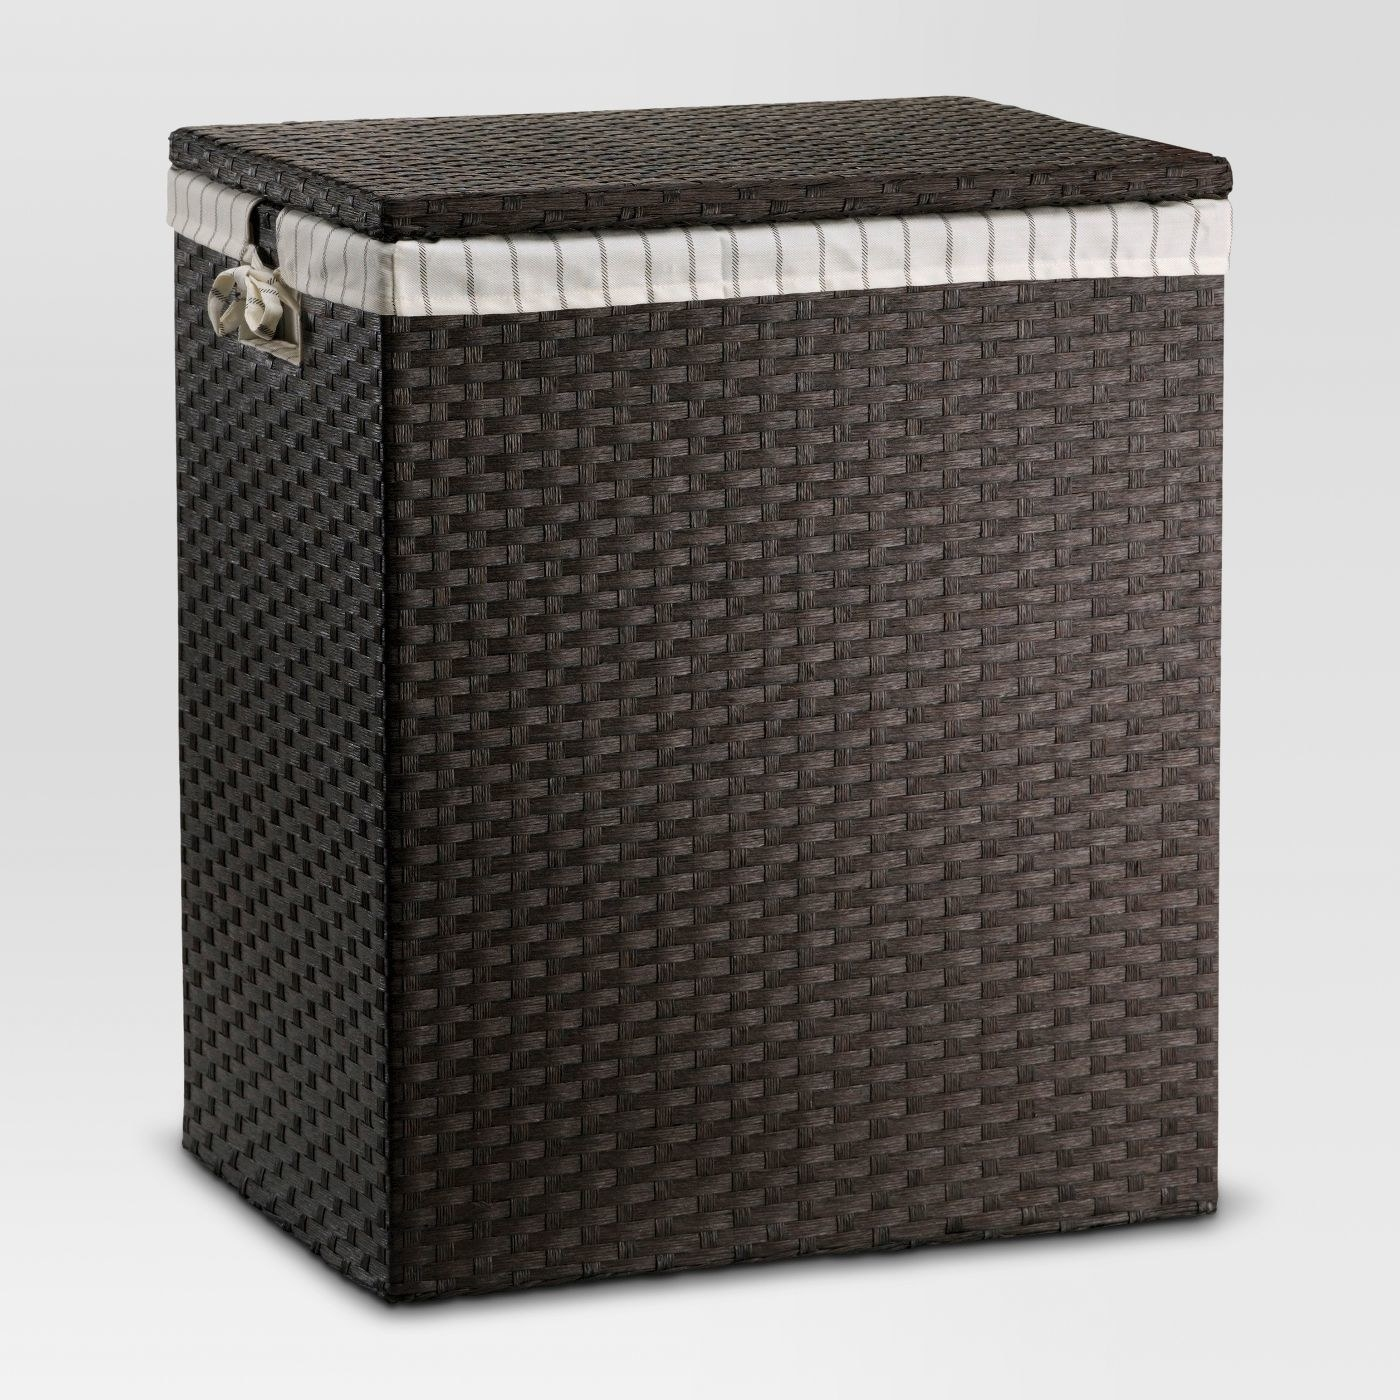 Dark brown hamper with gray and cream lining